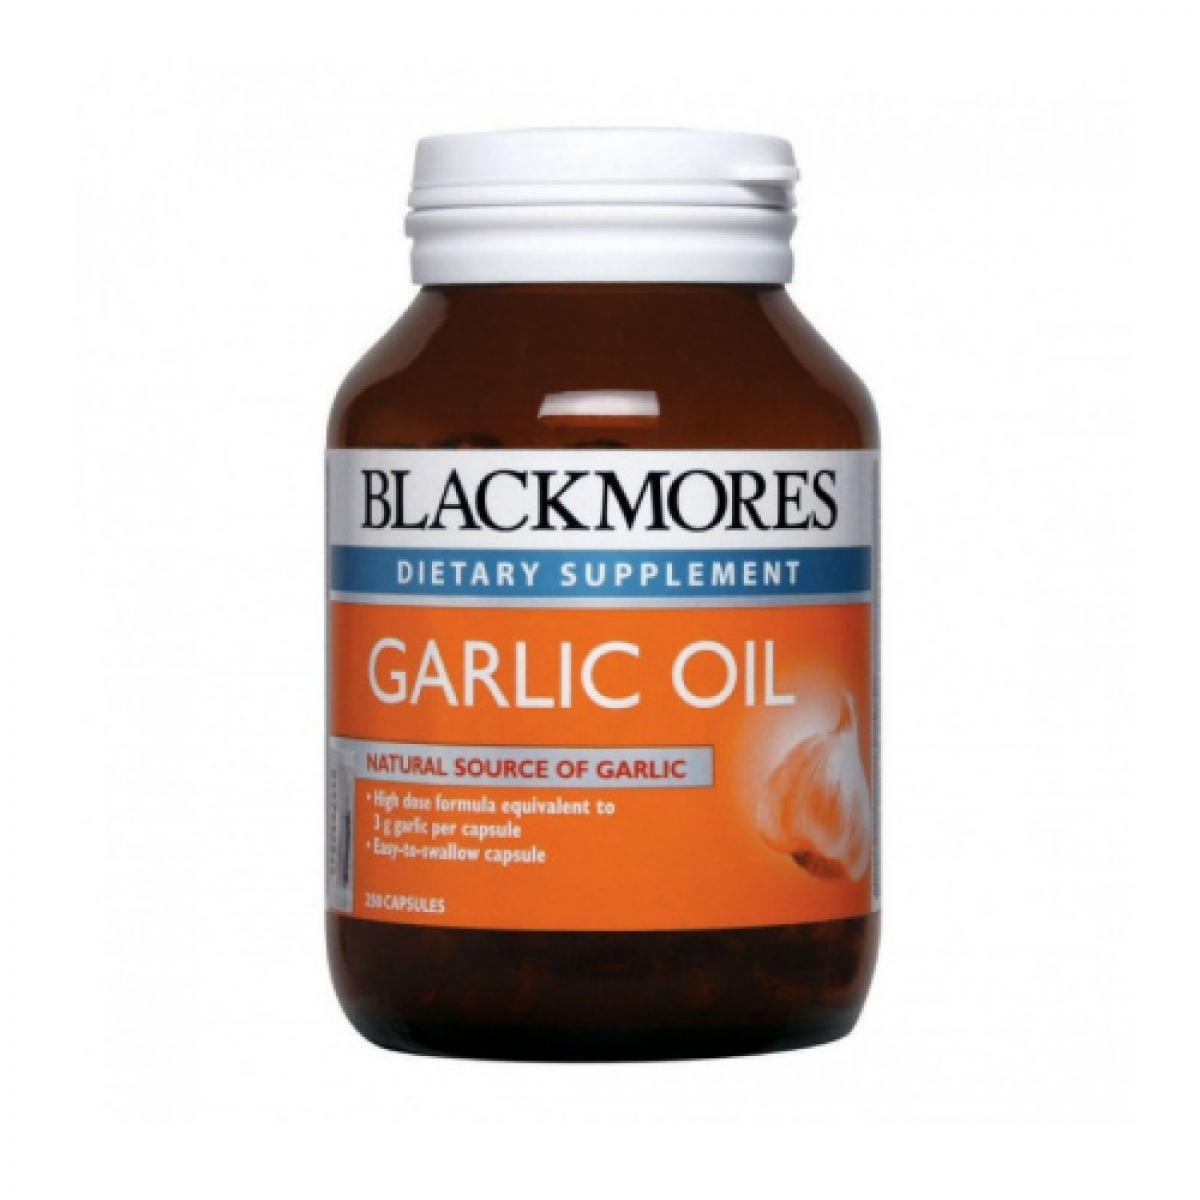 Blackmores Garlic Oil – Green Wellness